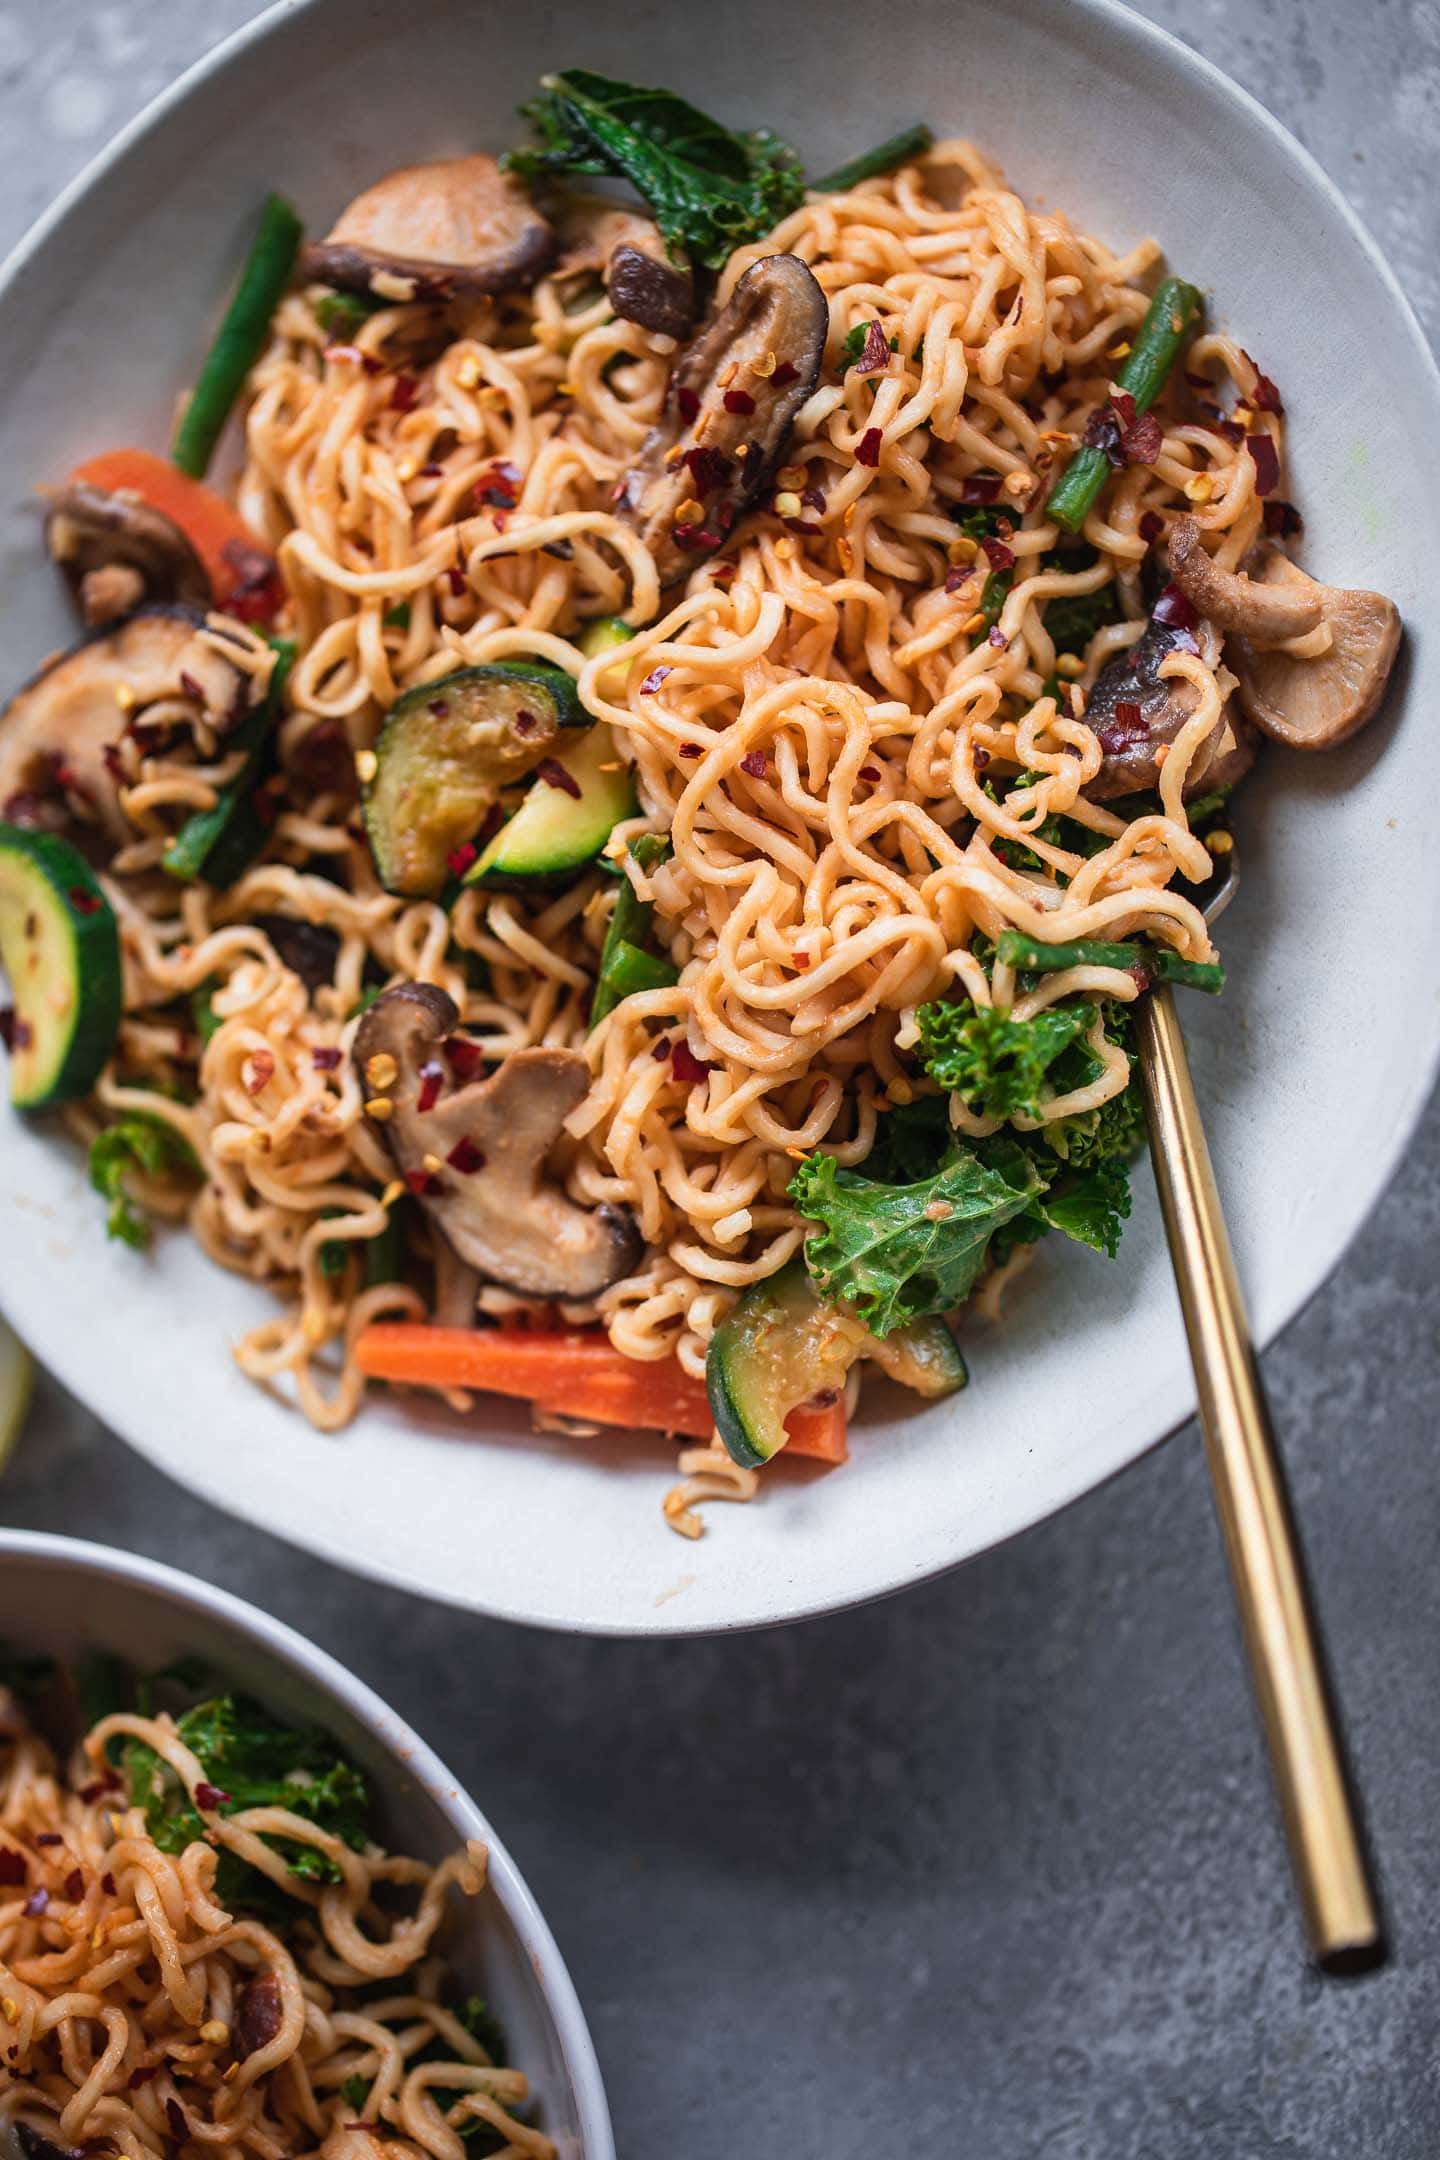 Two bowls of peanut butter noodles with vegetables